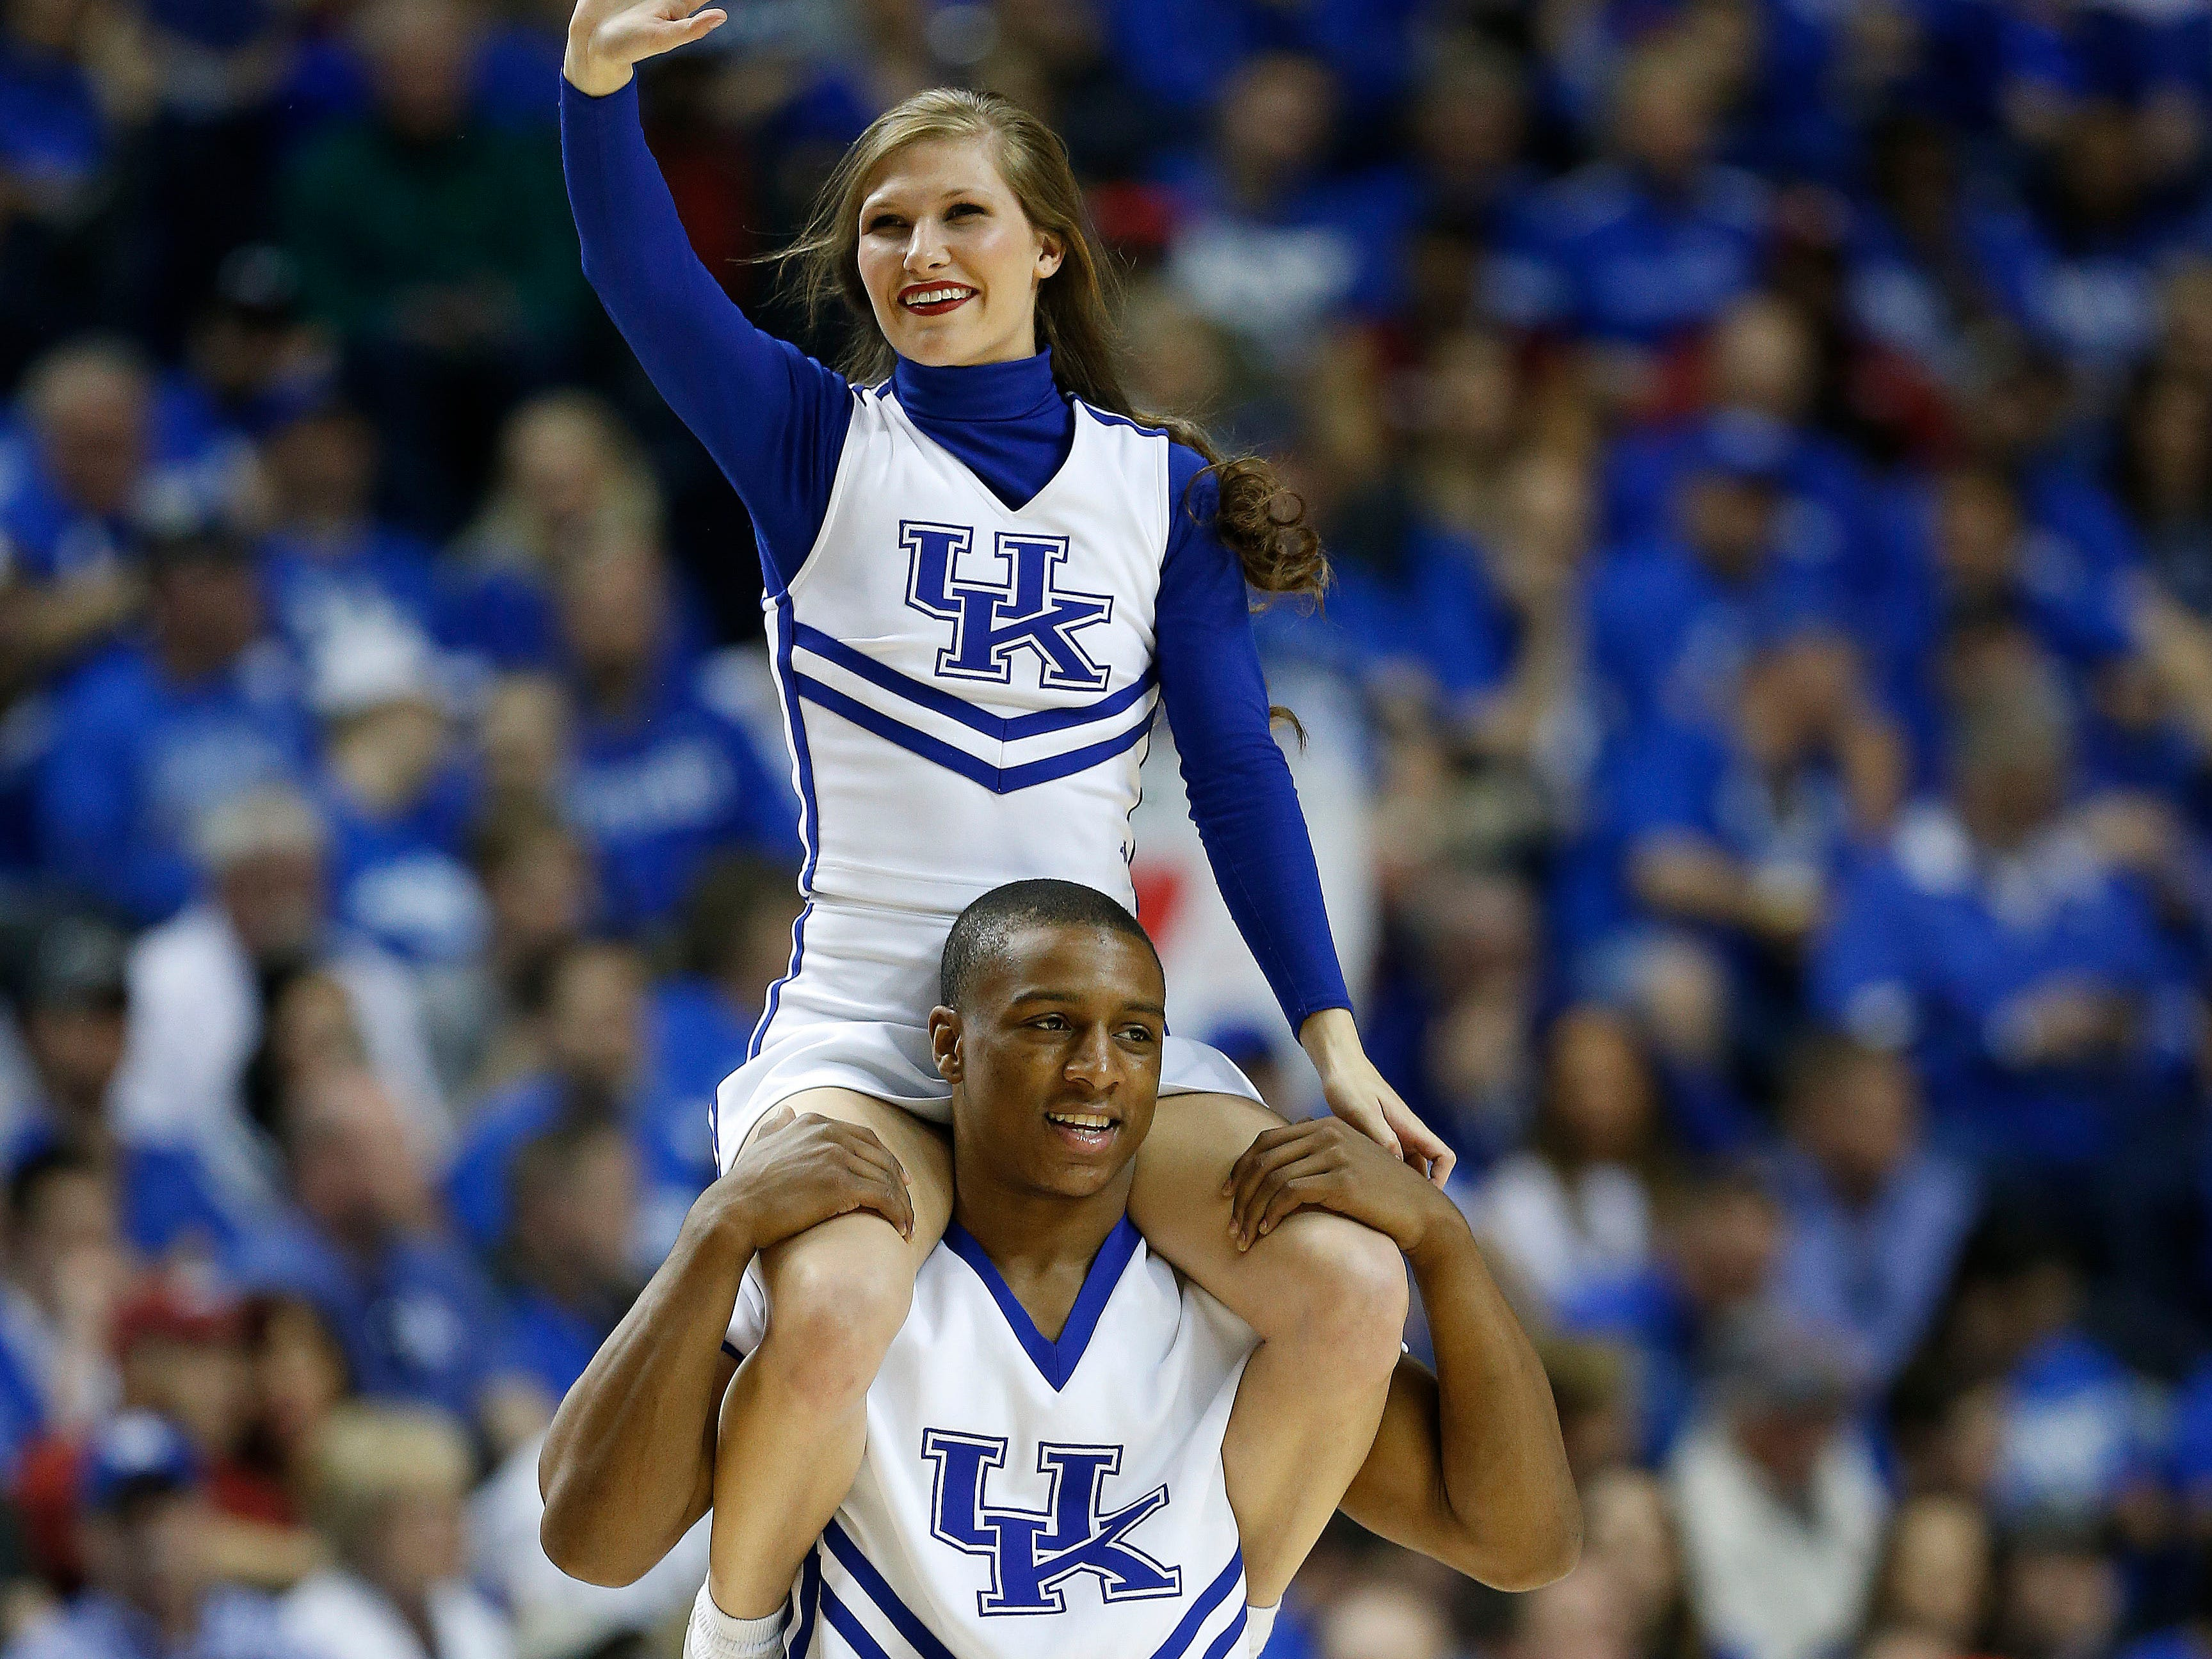 Kentucky cheerleaders perform during the first half of the NCAA college basketball Southeastern Conference tournament championship game between Kentucky and Arkansas, Sunday, March 15, 2015, in Nashville, Tenn. (AP Photo/Mark Humphrey)